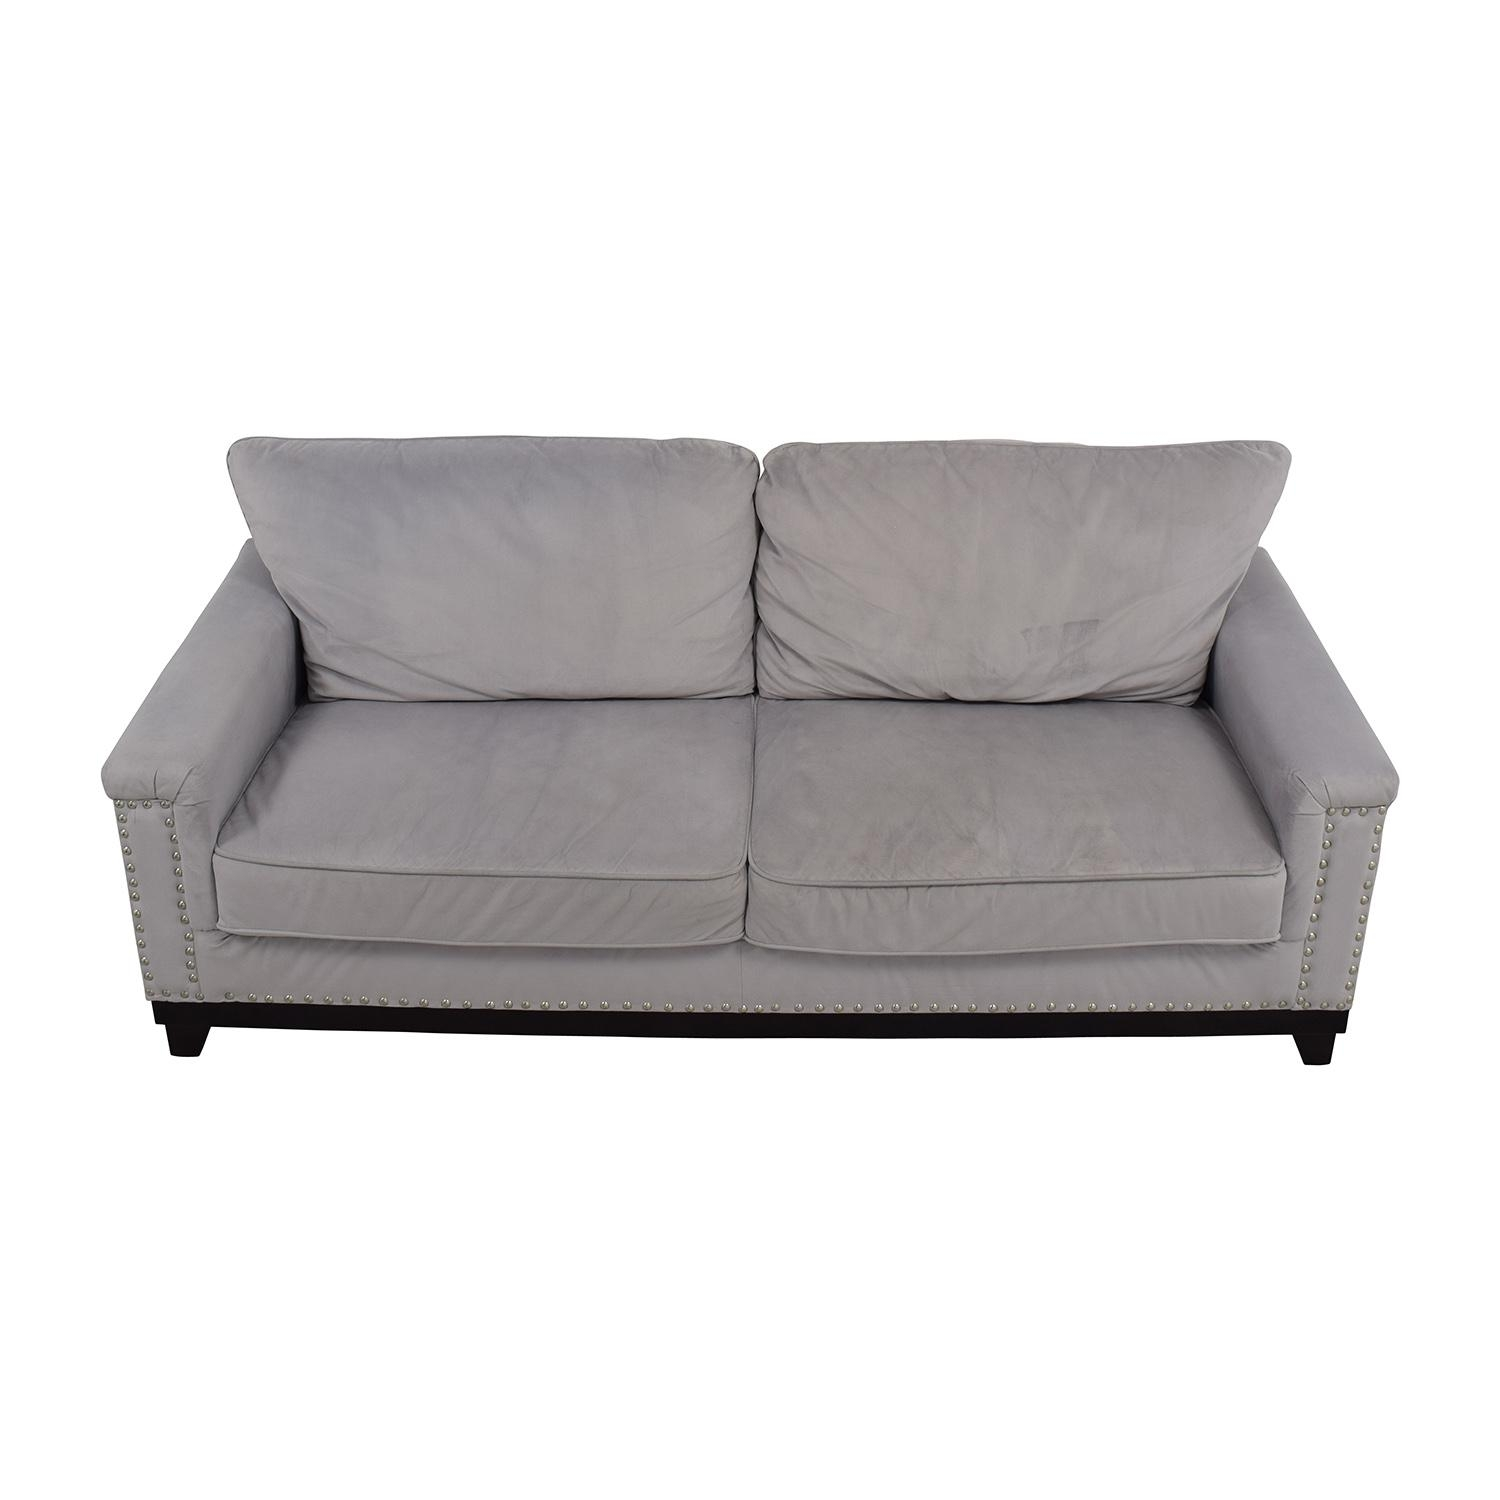 new sofa for sale white fabric uk 20 inspirations classic sofas ideas